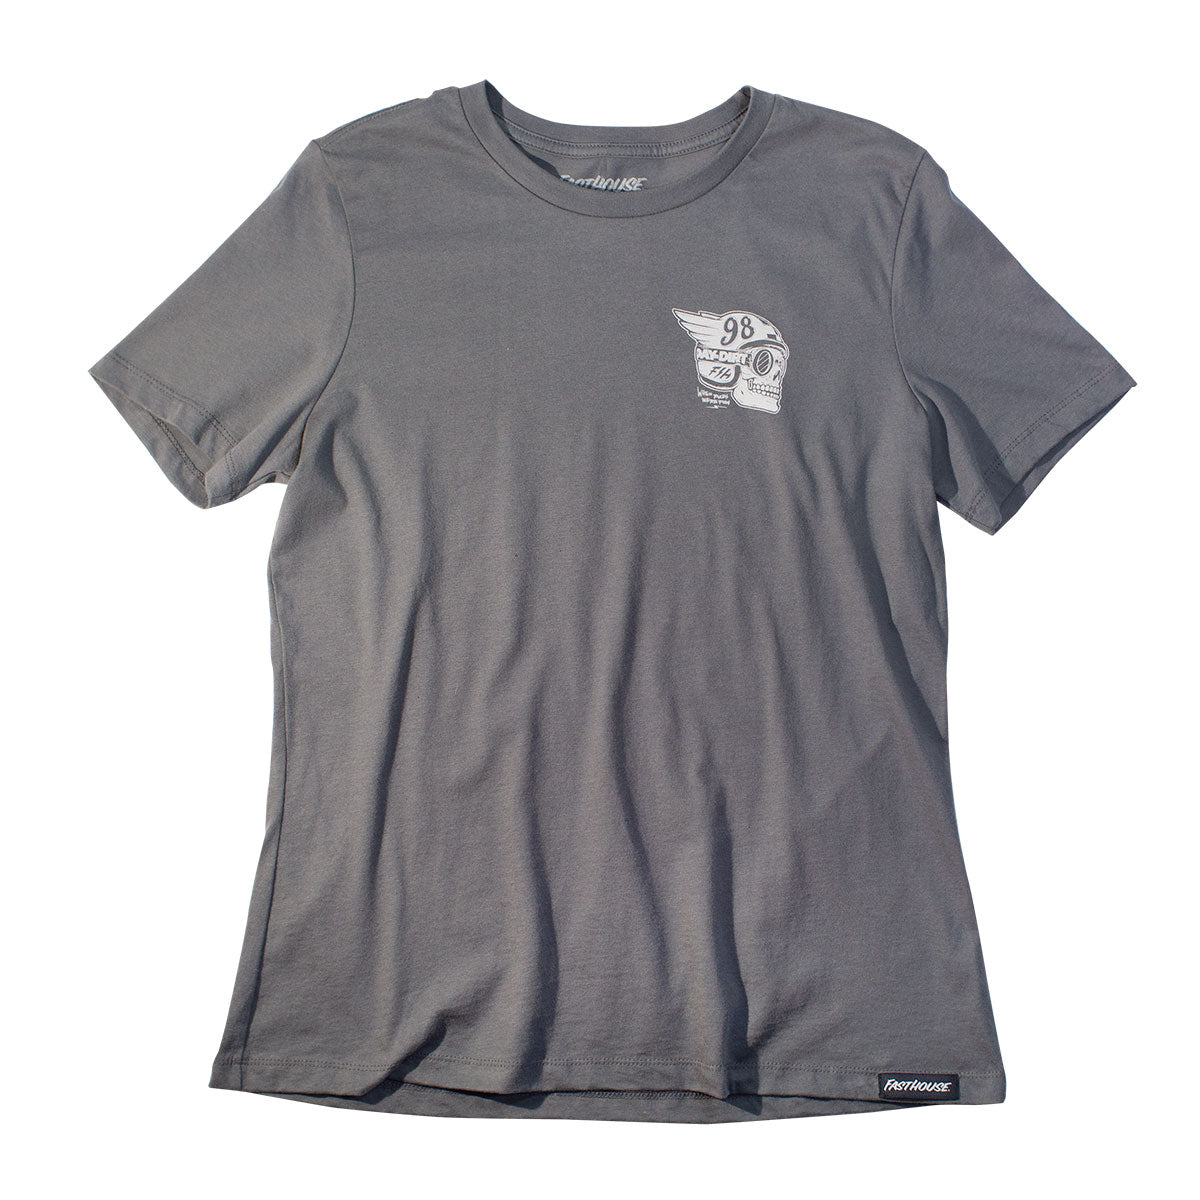 Fasthouse - Day in the Dirt Victory Womens Tee - Asphalt